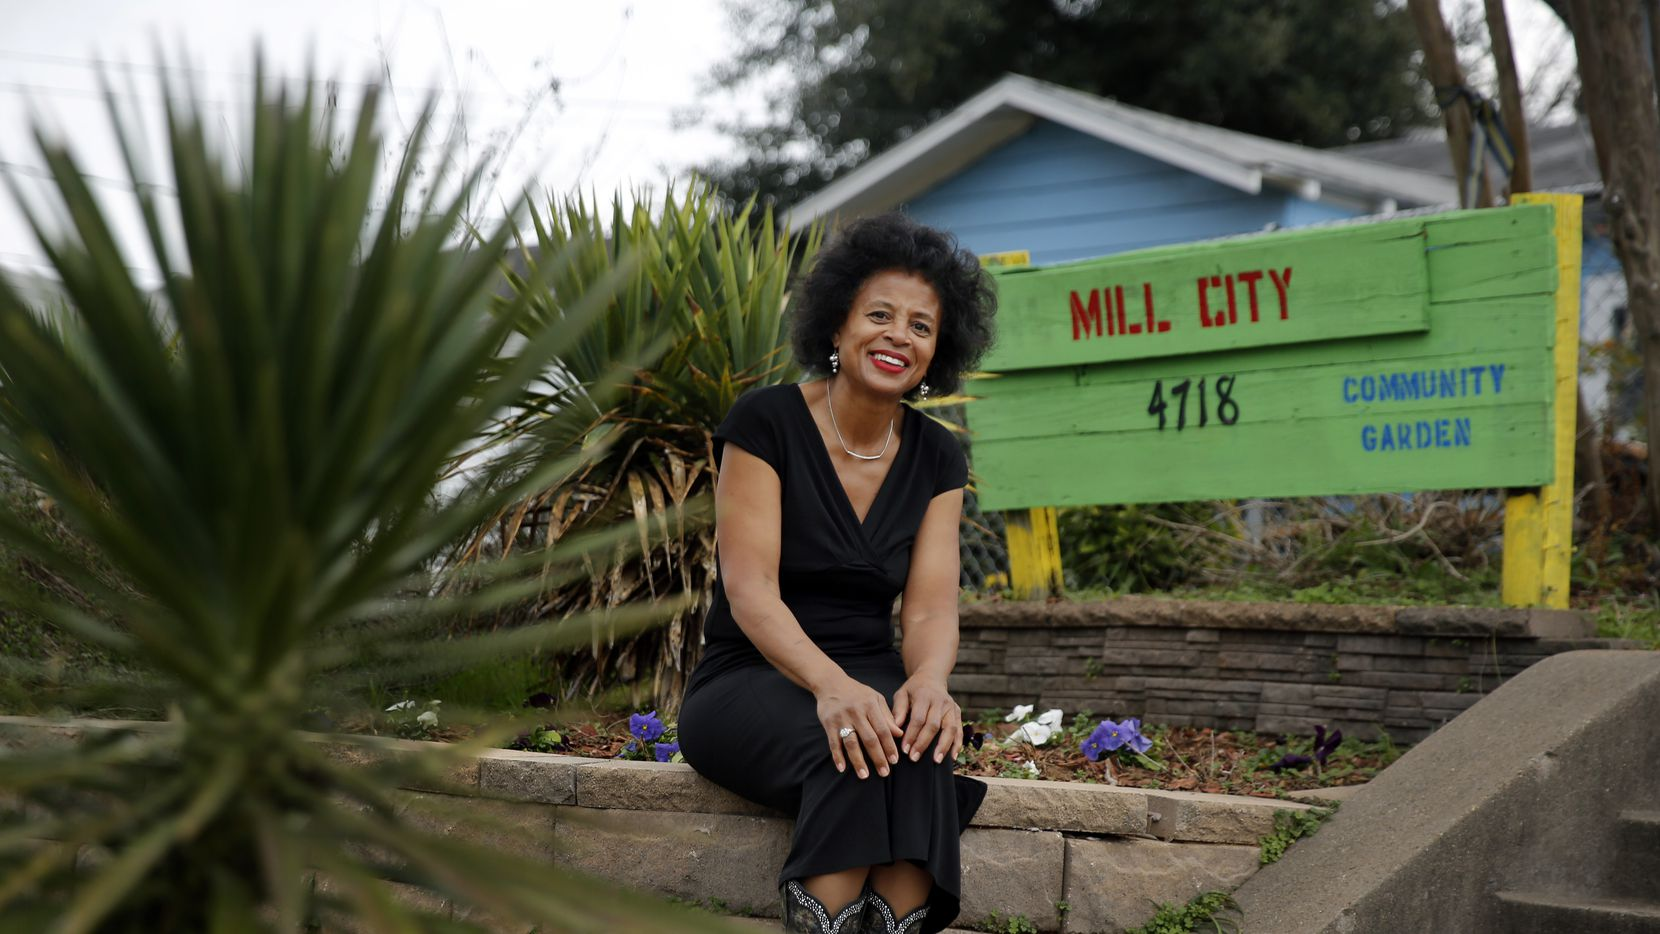 Since moving back to South Dallas, resident Alendra Lyons has been trying to make improvements and clean up the Mill City area, including the community garden next door to her home, Wednesday, January 15, 2020. (Tom Fox/The Dallas Morning News)